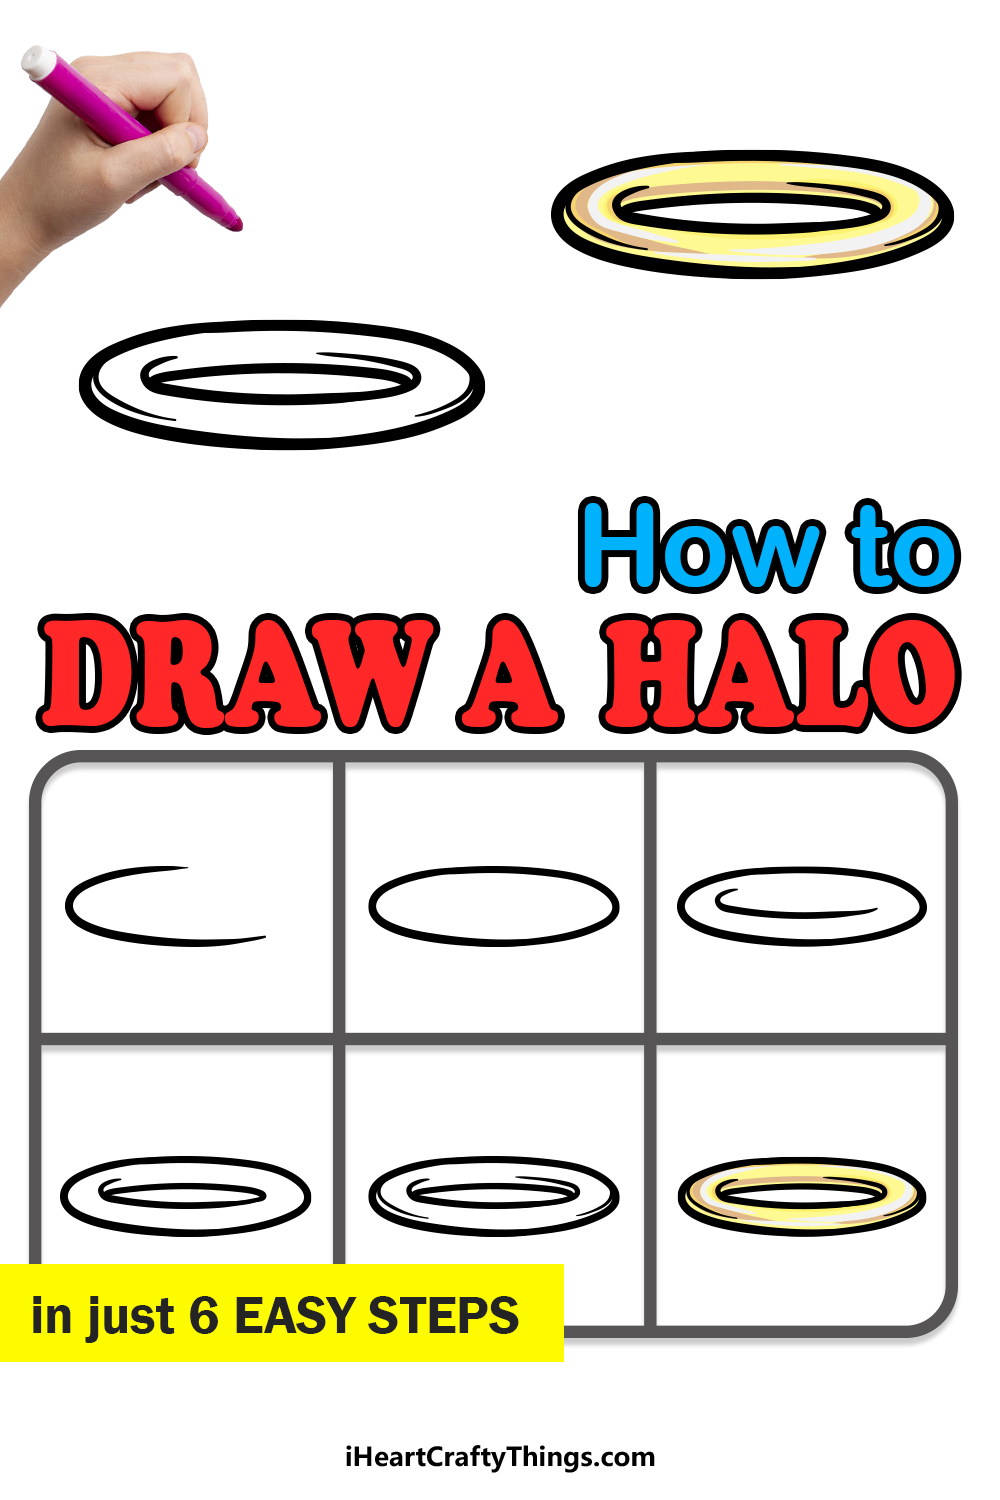 how to draw a halo in 6 easy steps